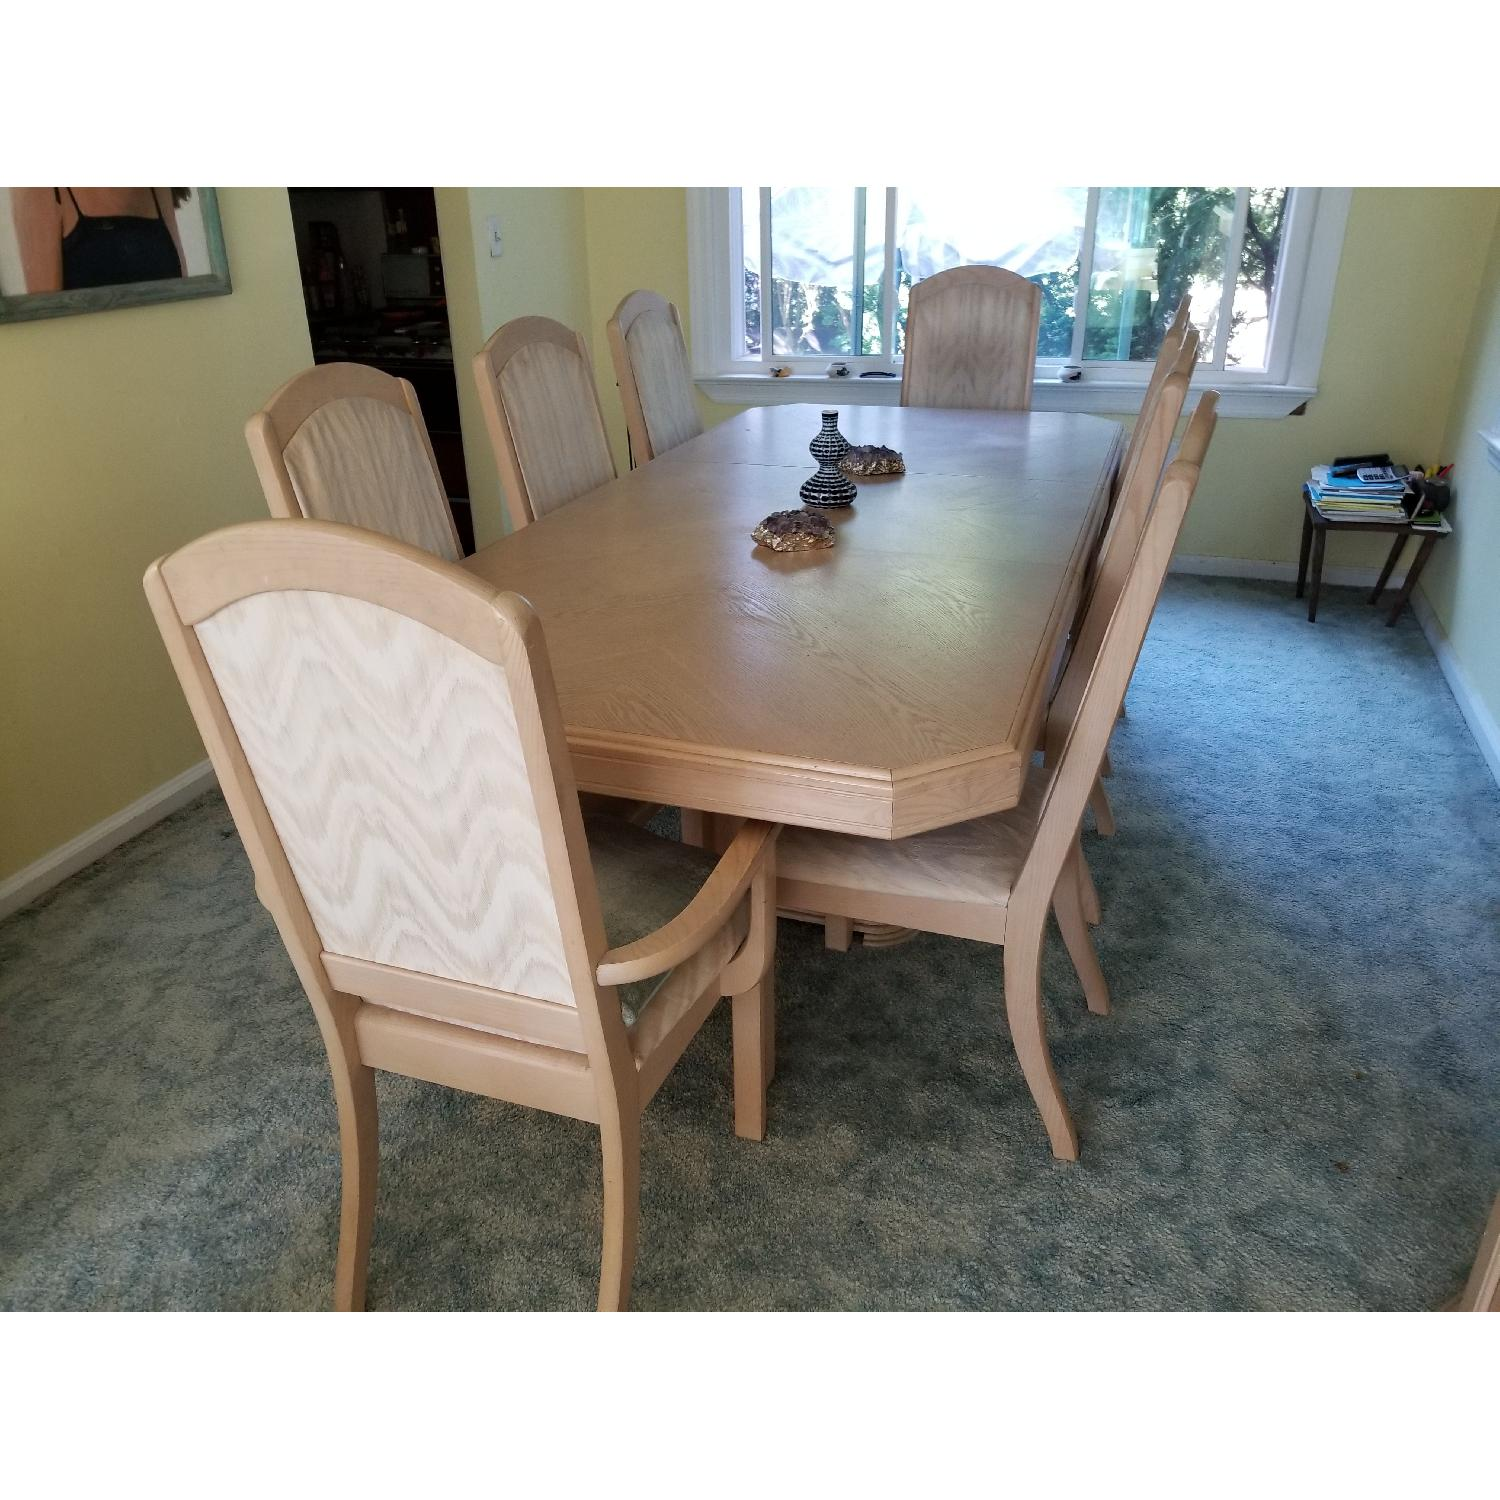 Seaman's Furniture Whitewash 9-Piece Dining Set - image-2